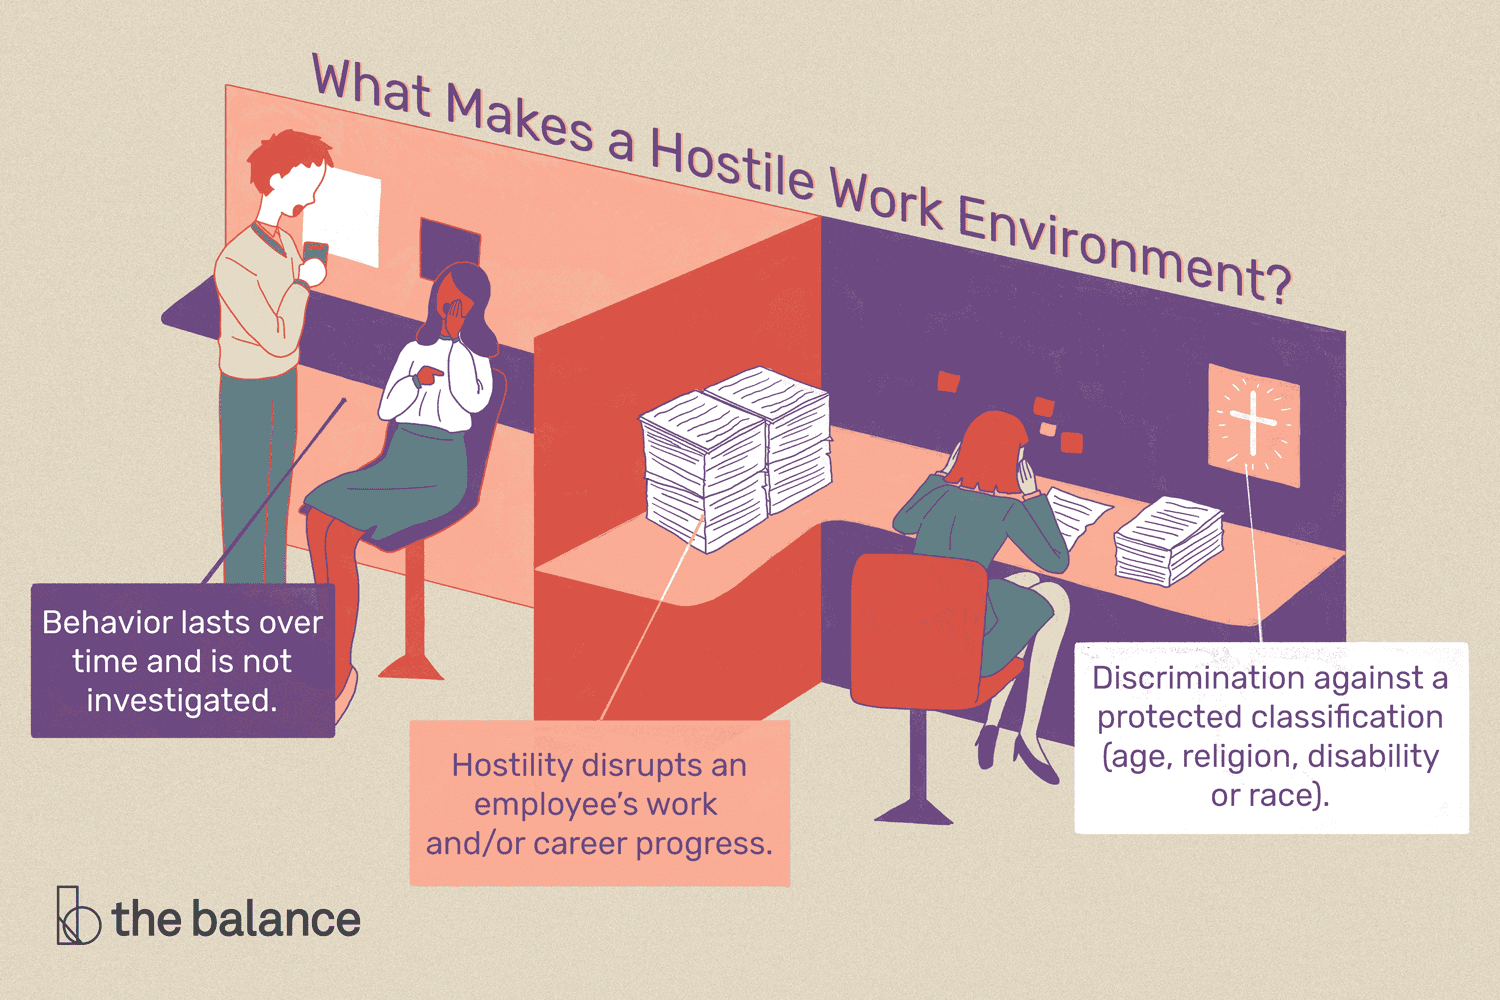 how to know if you have a hostile work environment